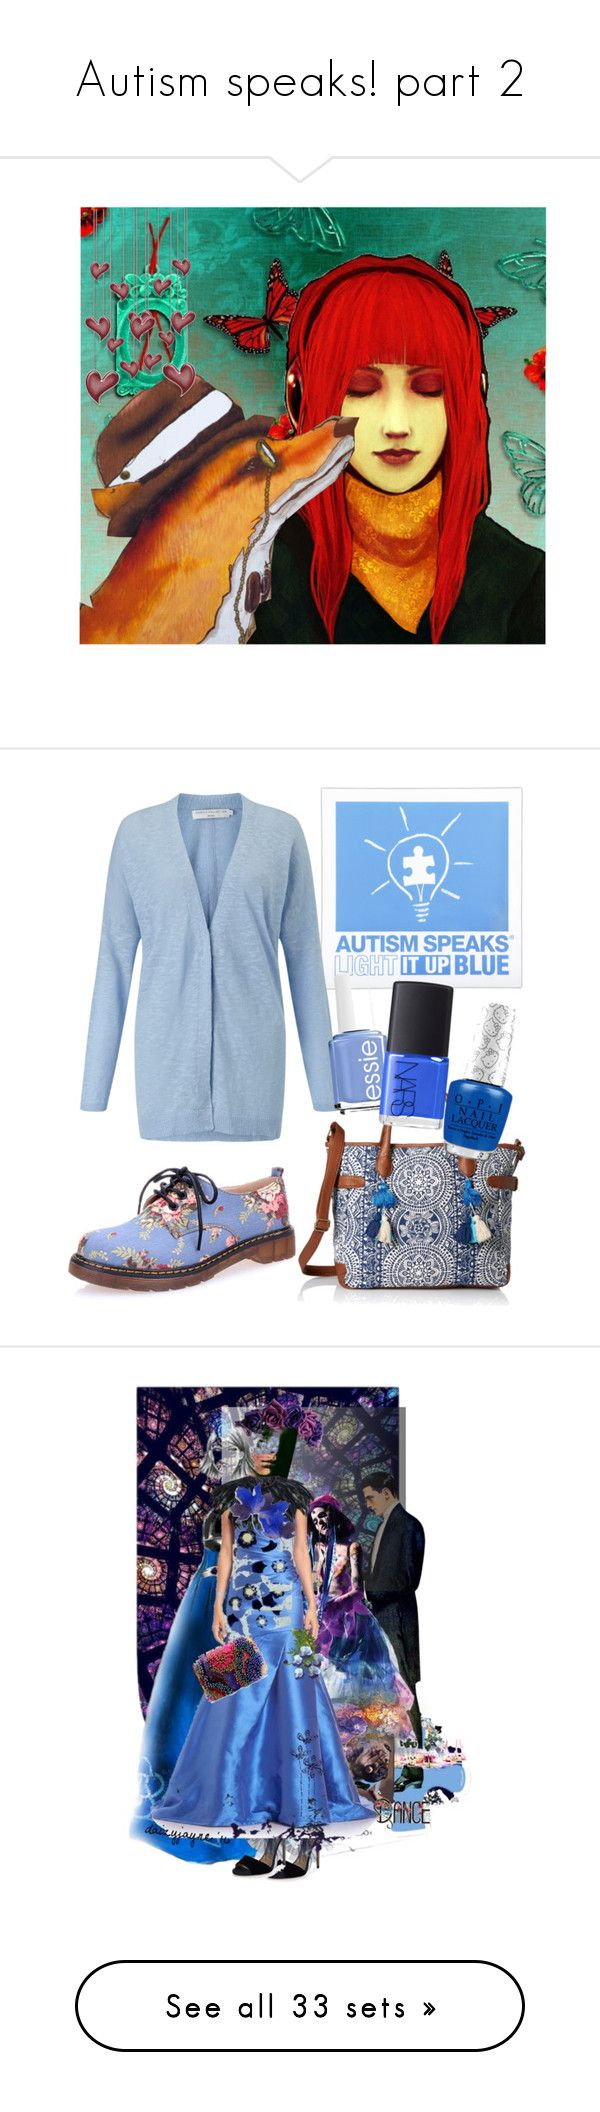 """Autism speaks! part 2"" by elliewriter ❤ liked on Polyvore featuring art, John Lewis, T-shirt & Jeans, Essie, NARS Cosmetics, autismawareness, lightitupblue2016, contestentry, autismball and Vera Bradley"